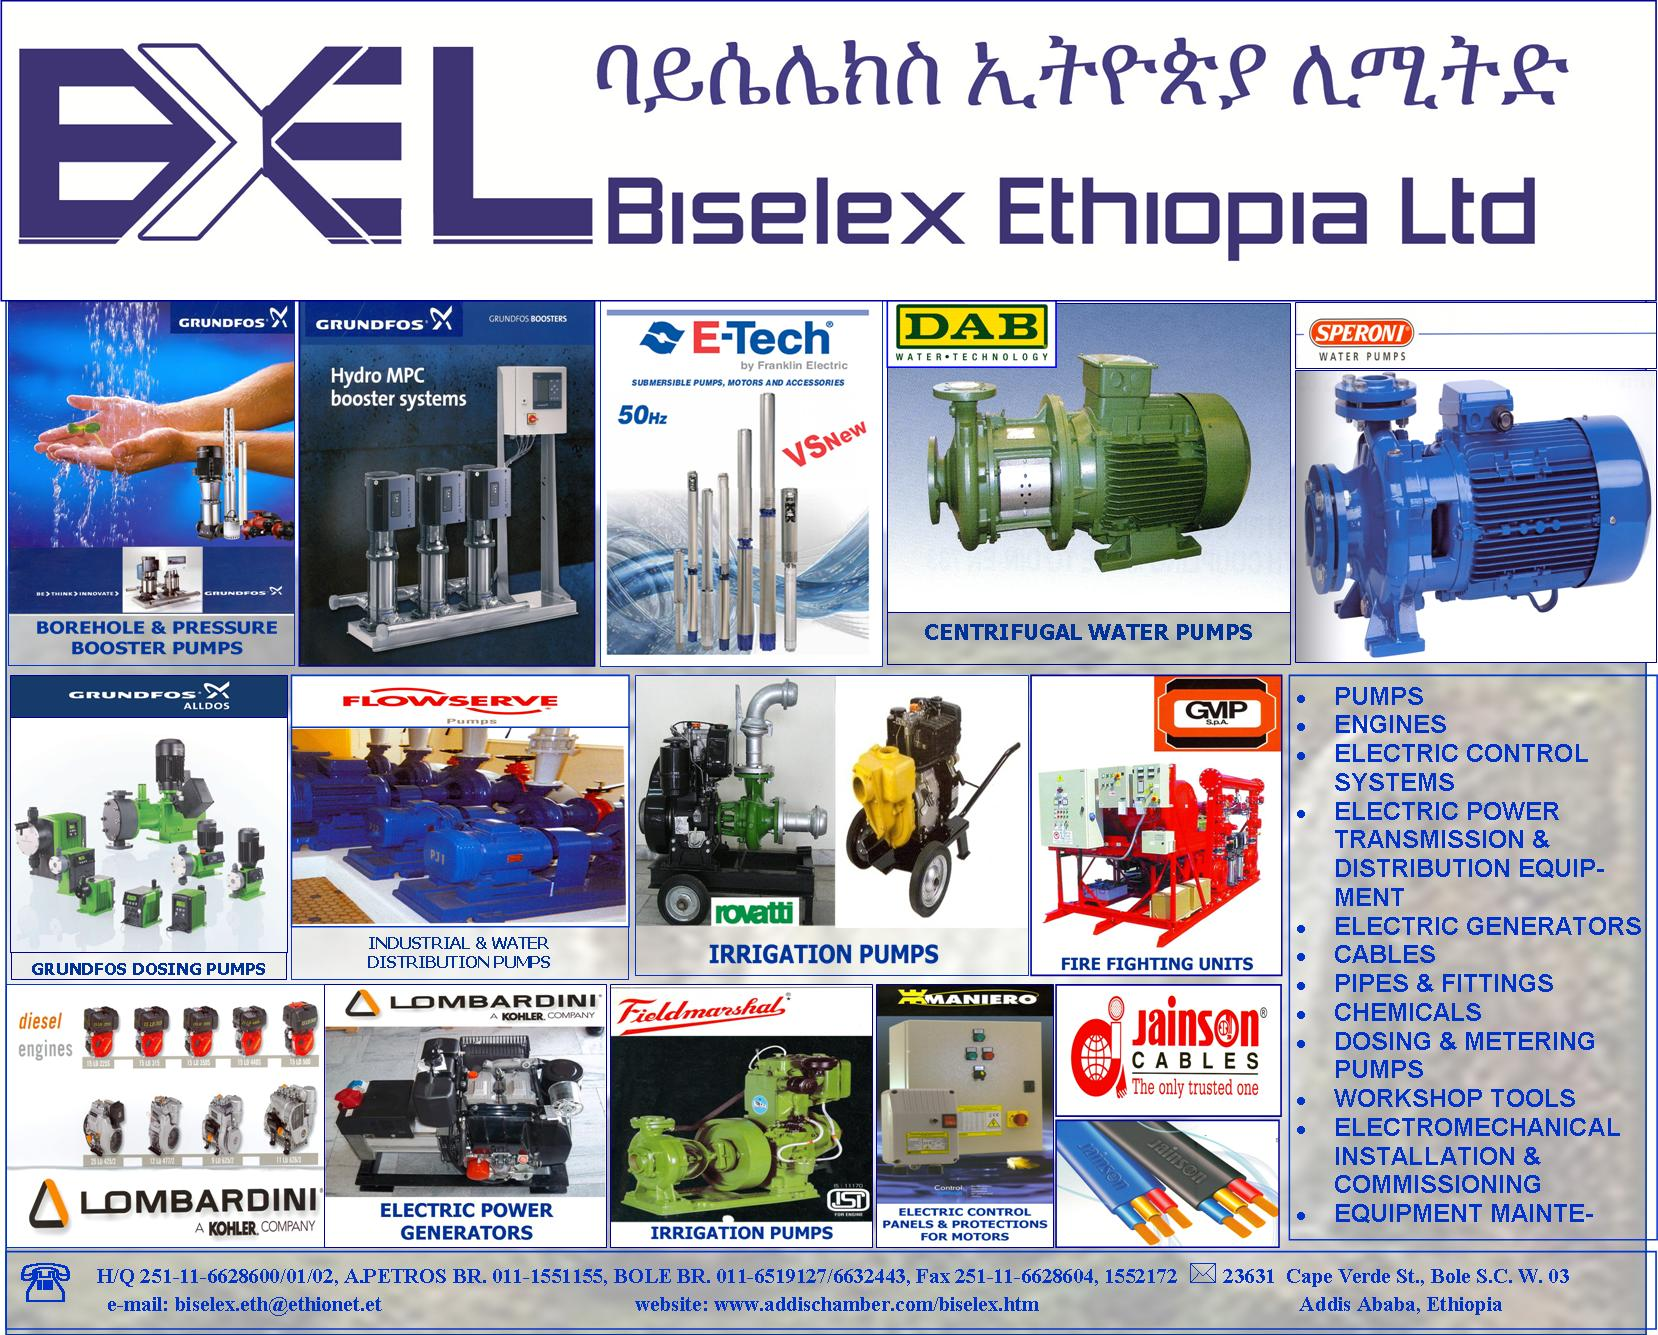 About Ethiopian Chamber of Commerce and Sectorial Associations